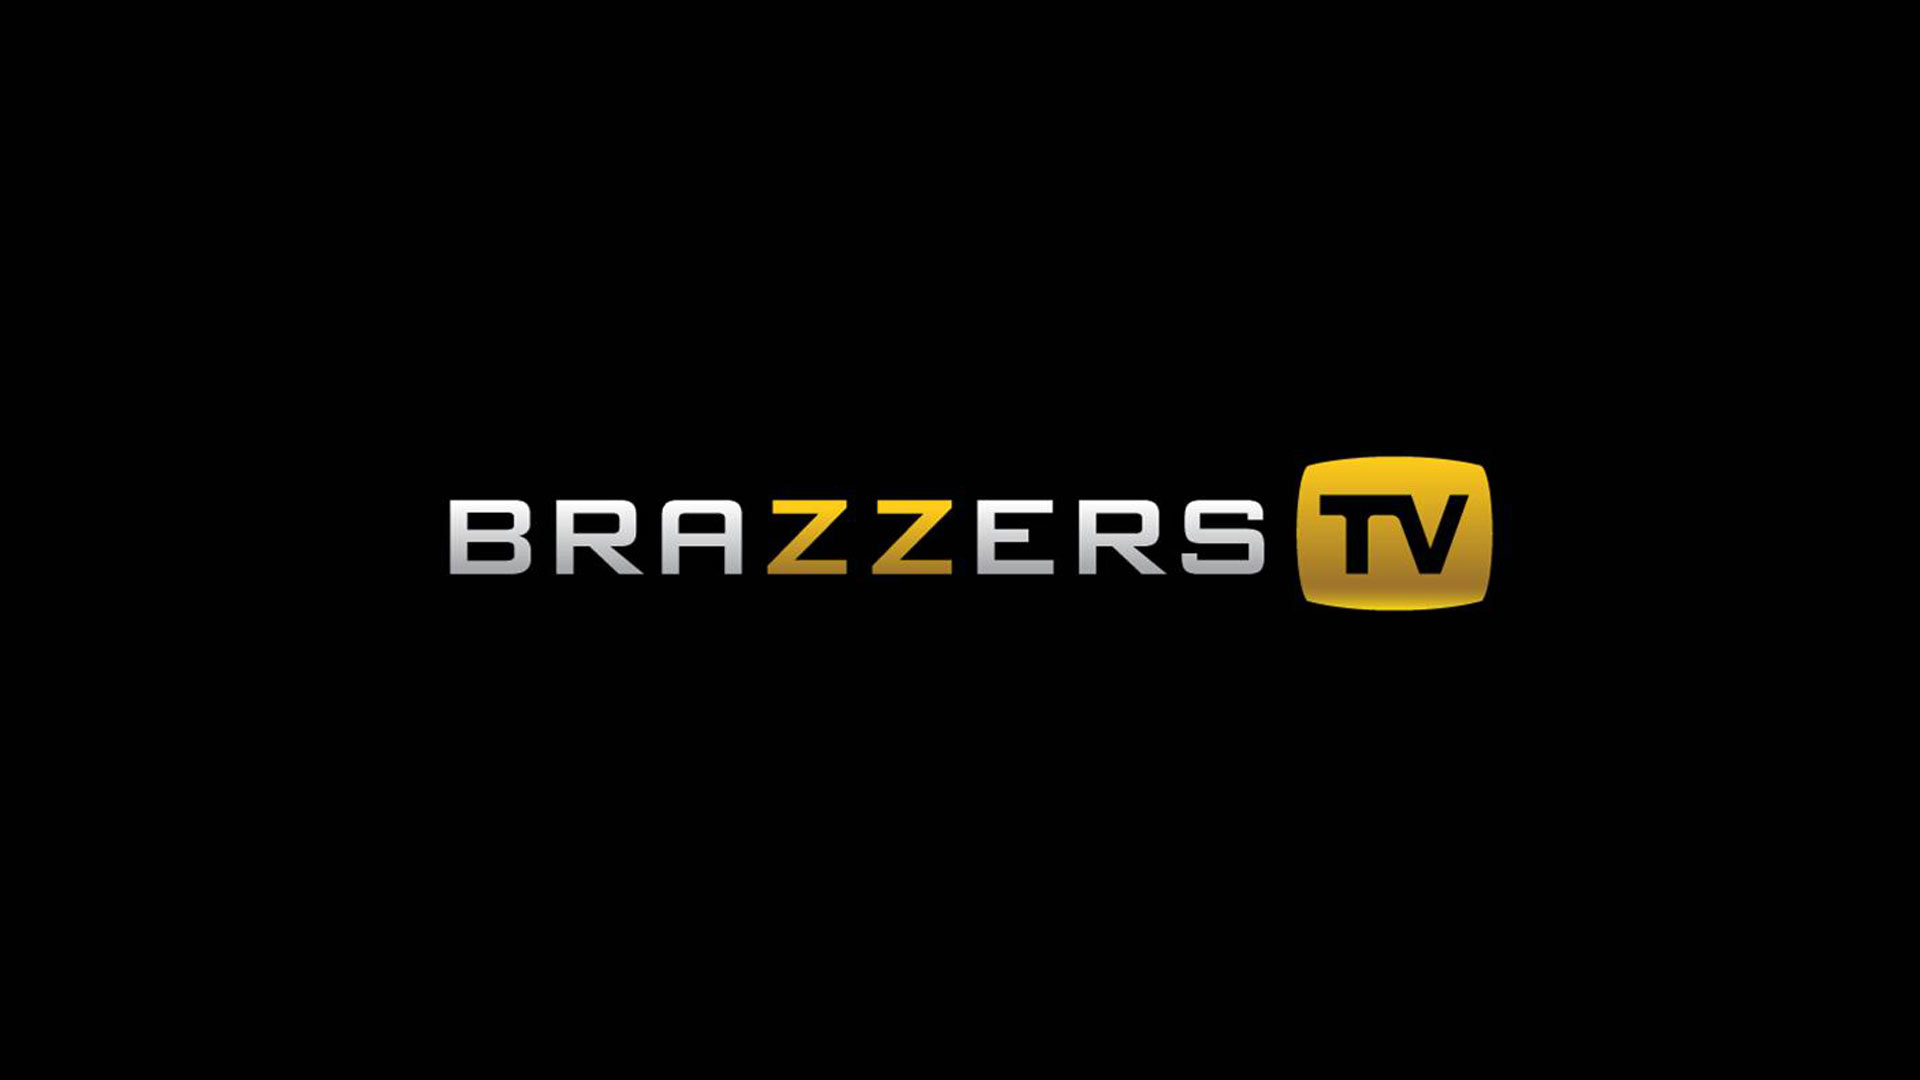 Watch BRAZZERS TV Live online